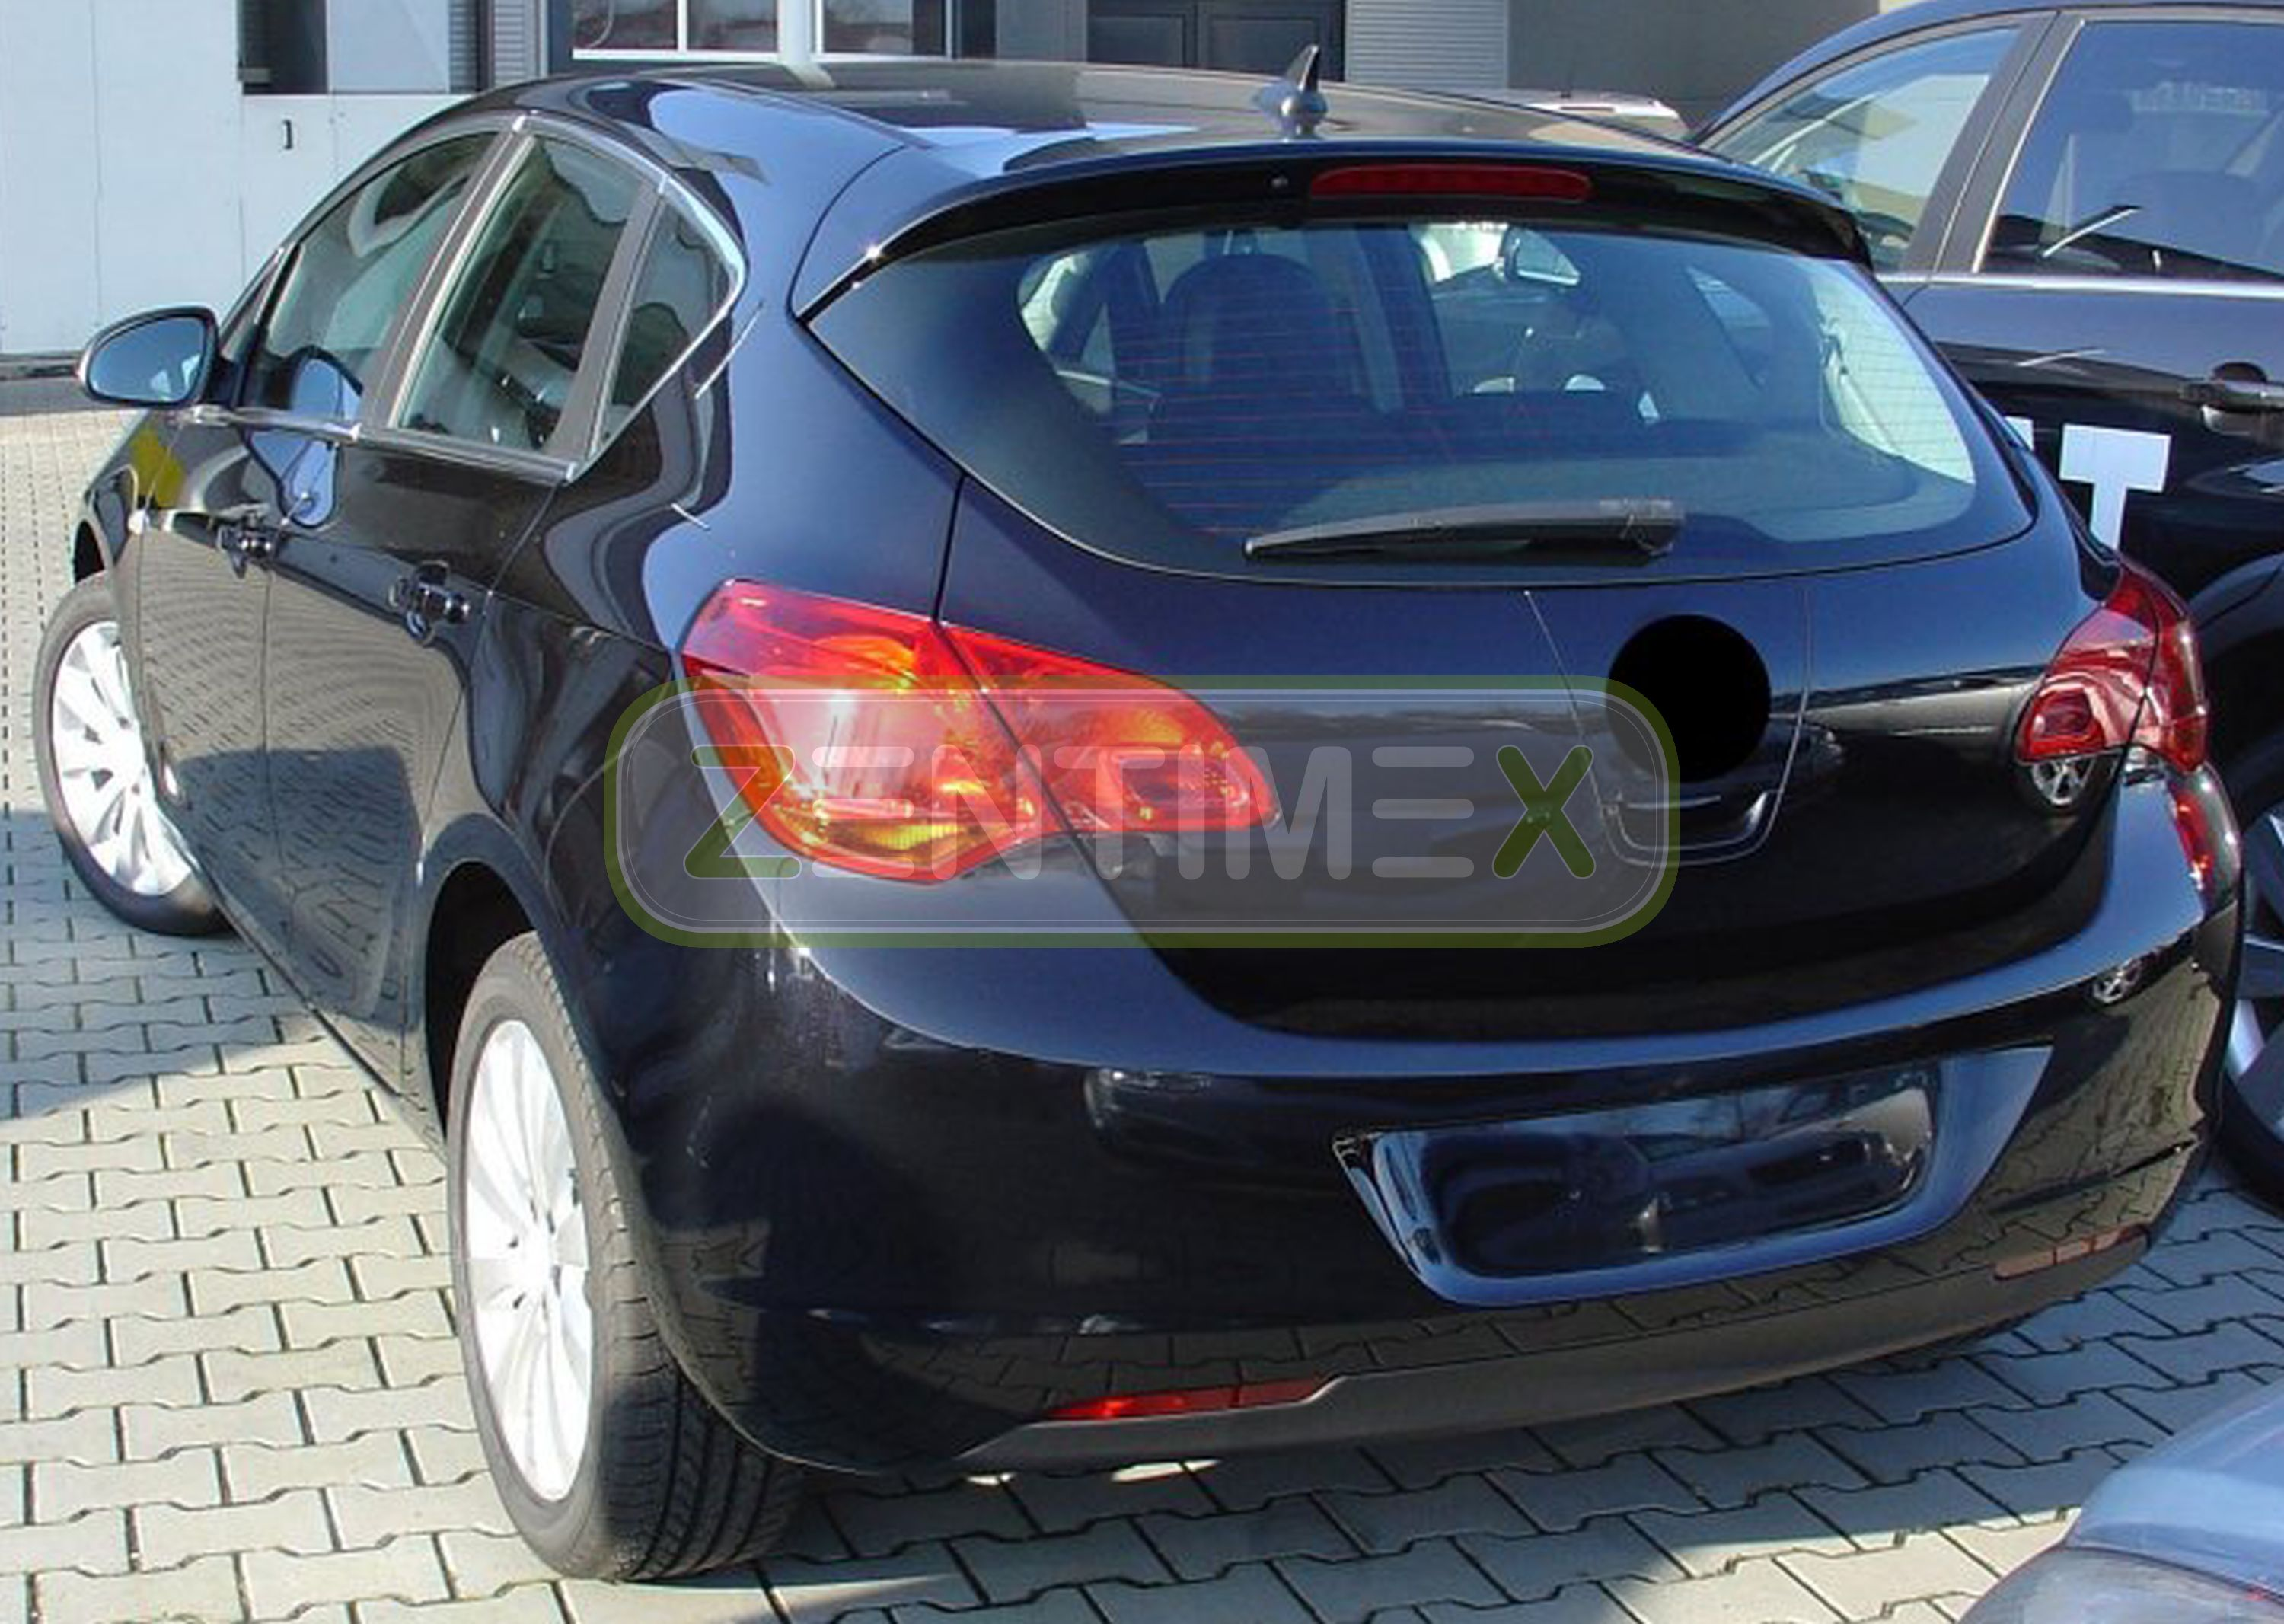 kofferraumwanne f r opel astra j schr gheck hatchback 5 t rer 2009 vertiefte la ebay. Black Bedroom Furniture Sets. Home Design Ideas